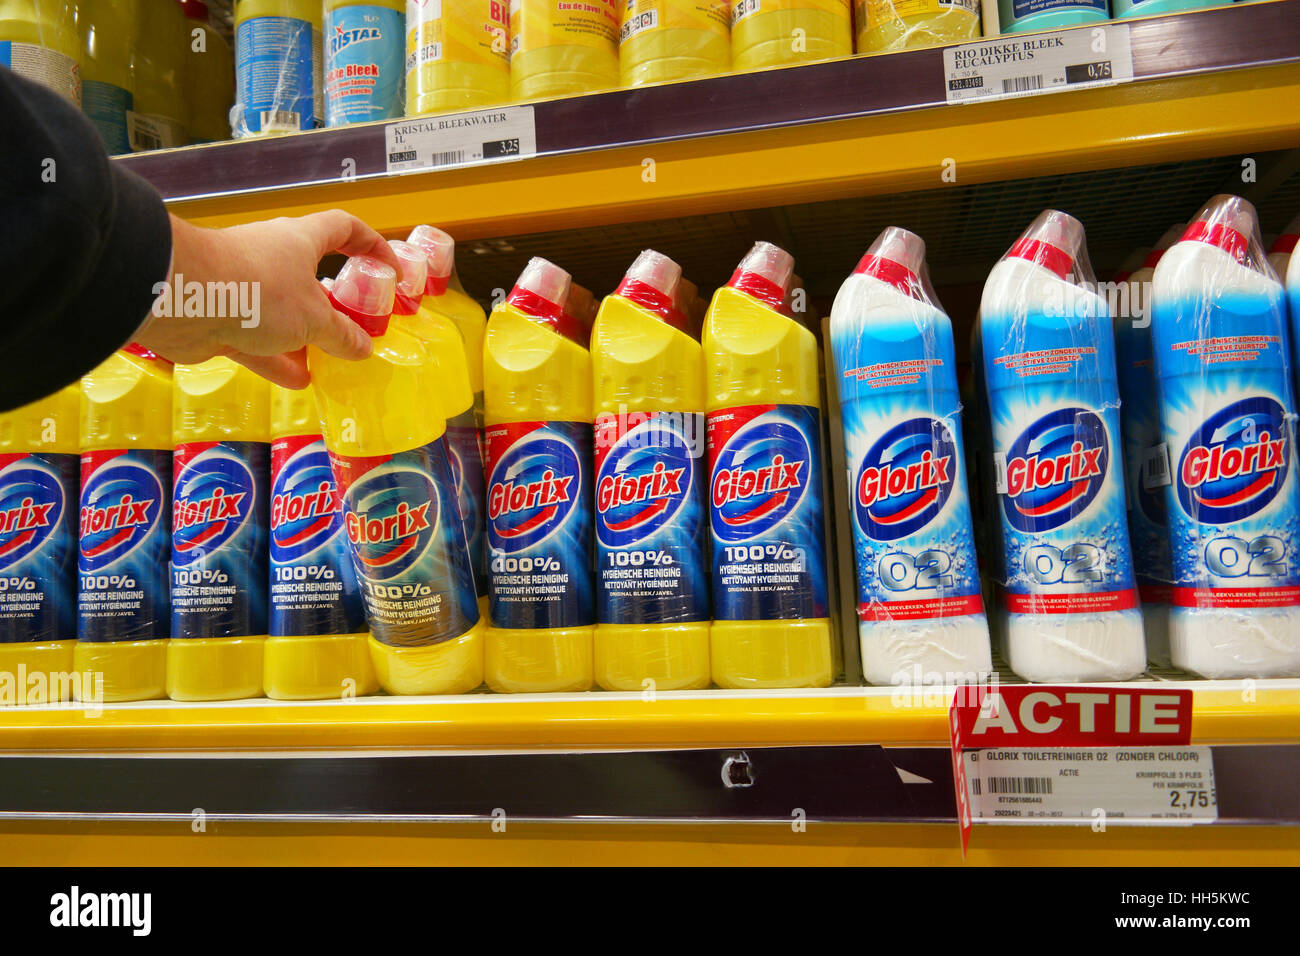 Glorix is a household cleaning range which contains bleach - Stock Image